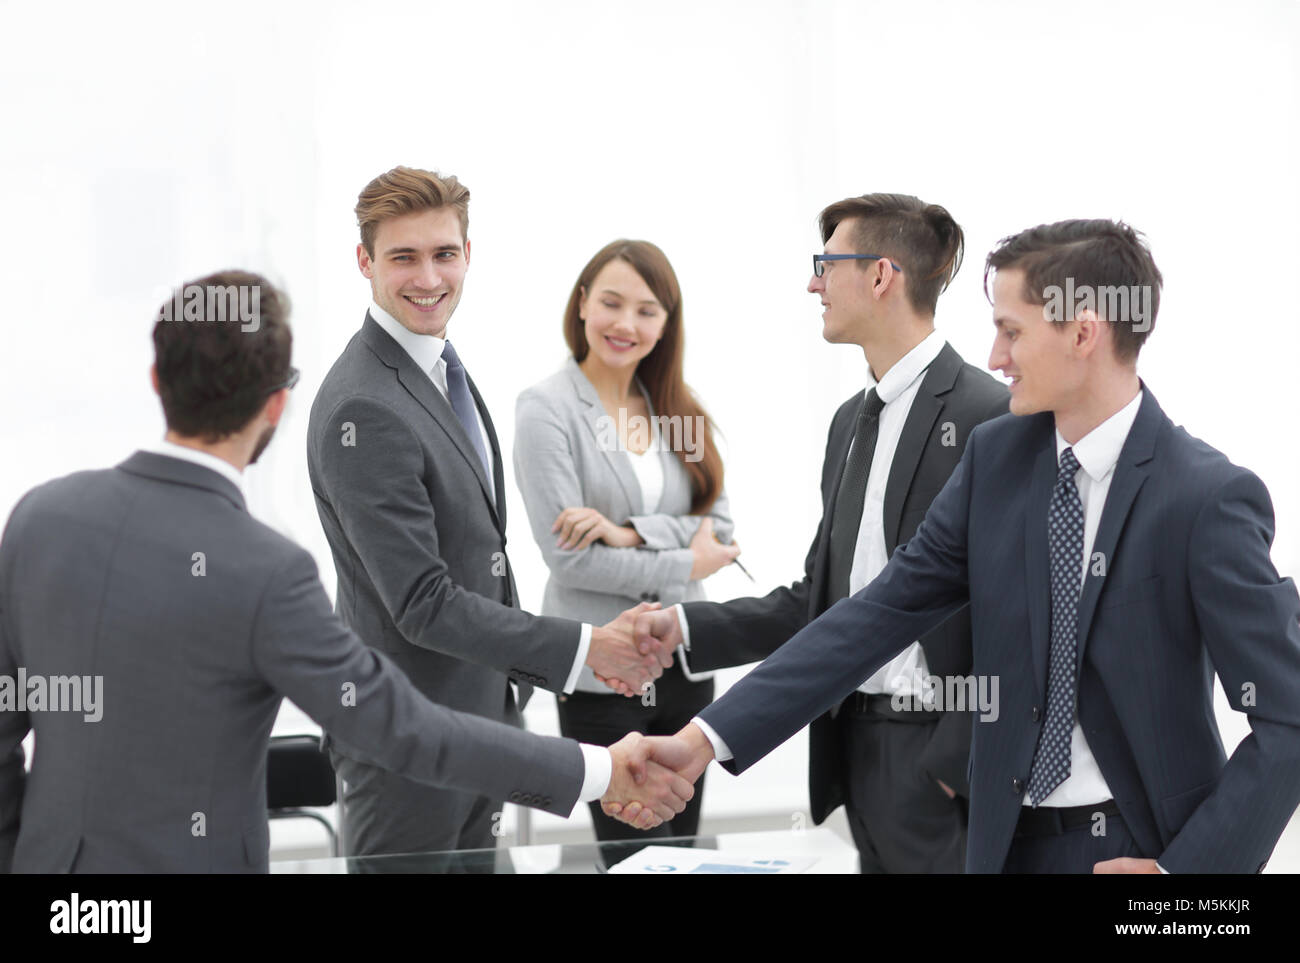 Business Professionals Shaking Hands